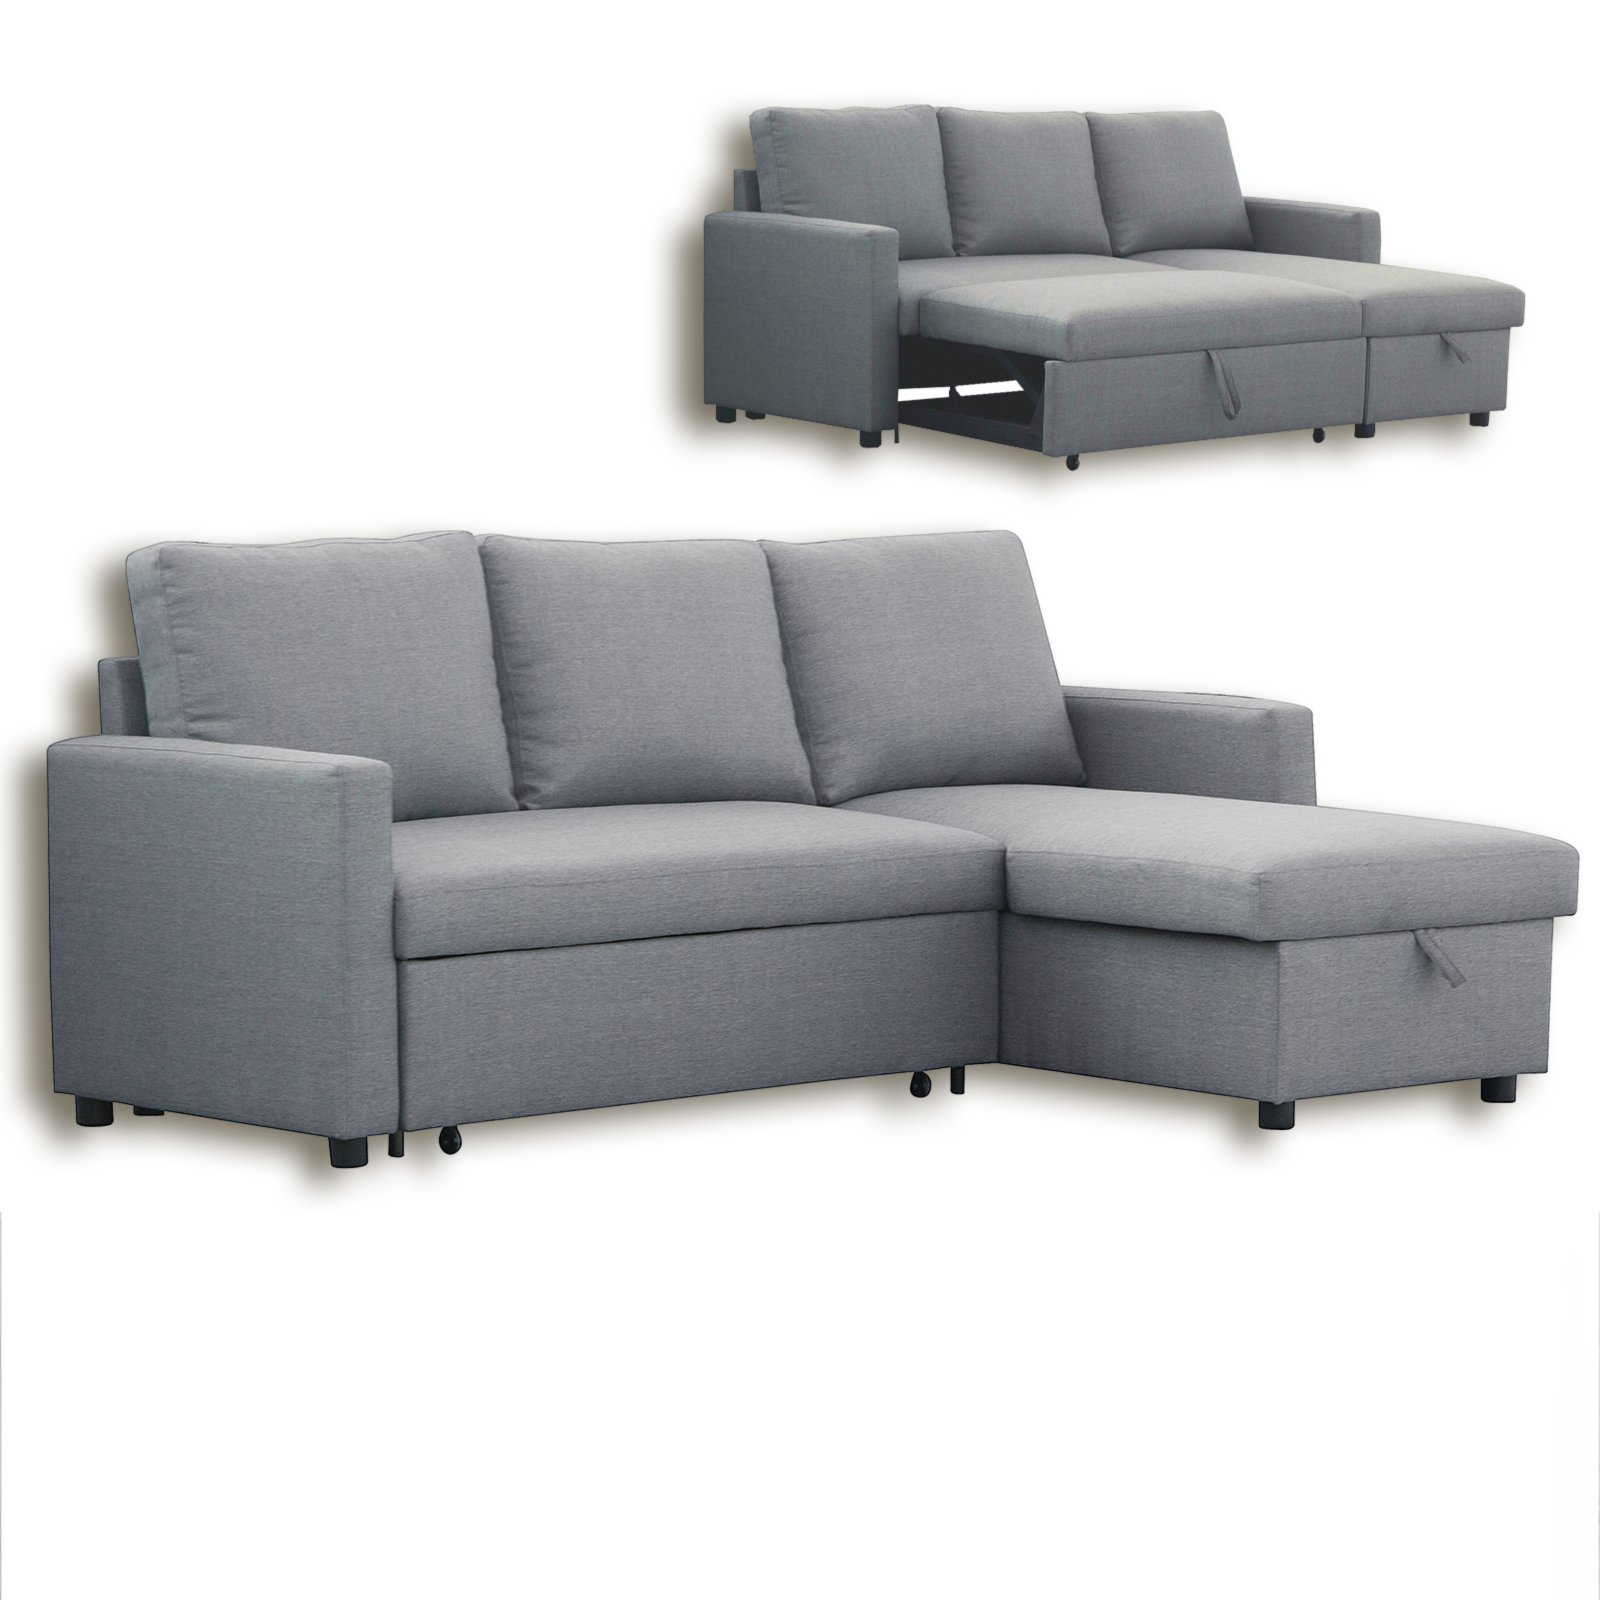 Ecksofa grau liegefunktion ecksofas l form sofas for Sofa l form grau